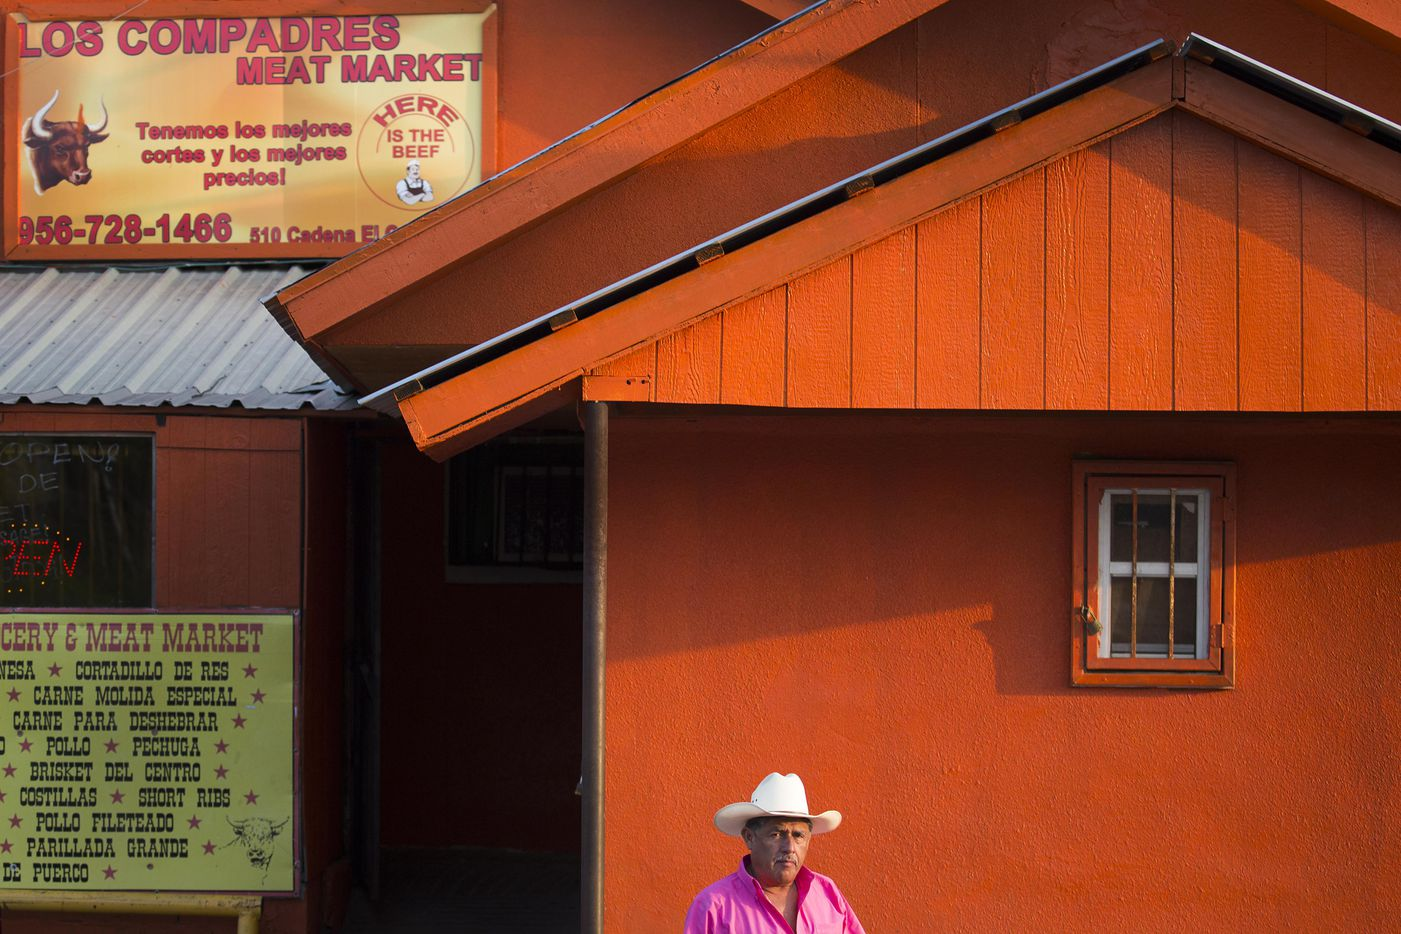 A man walks out of Los Compadres Meat Market on May 10, 2017, in El Cenizo, Texas.